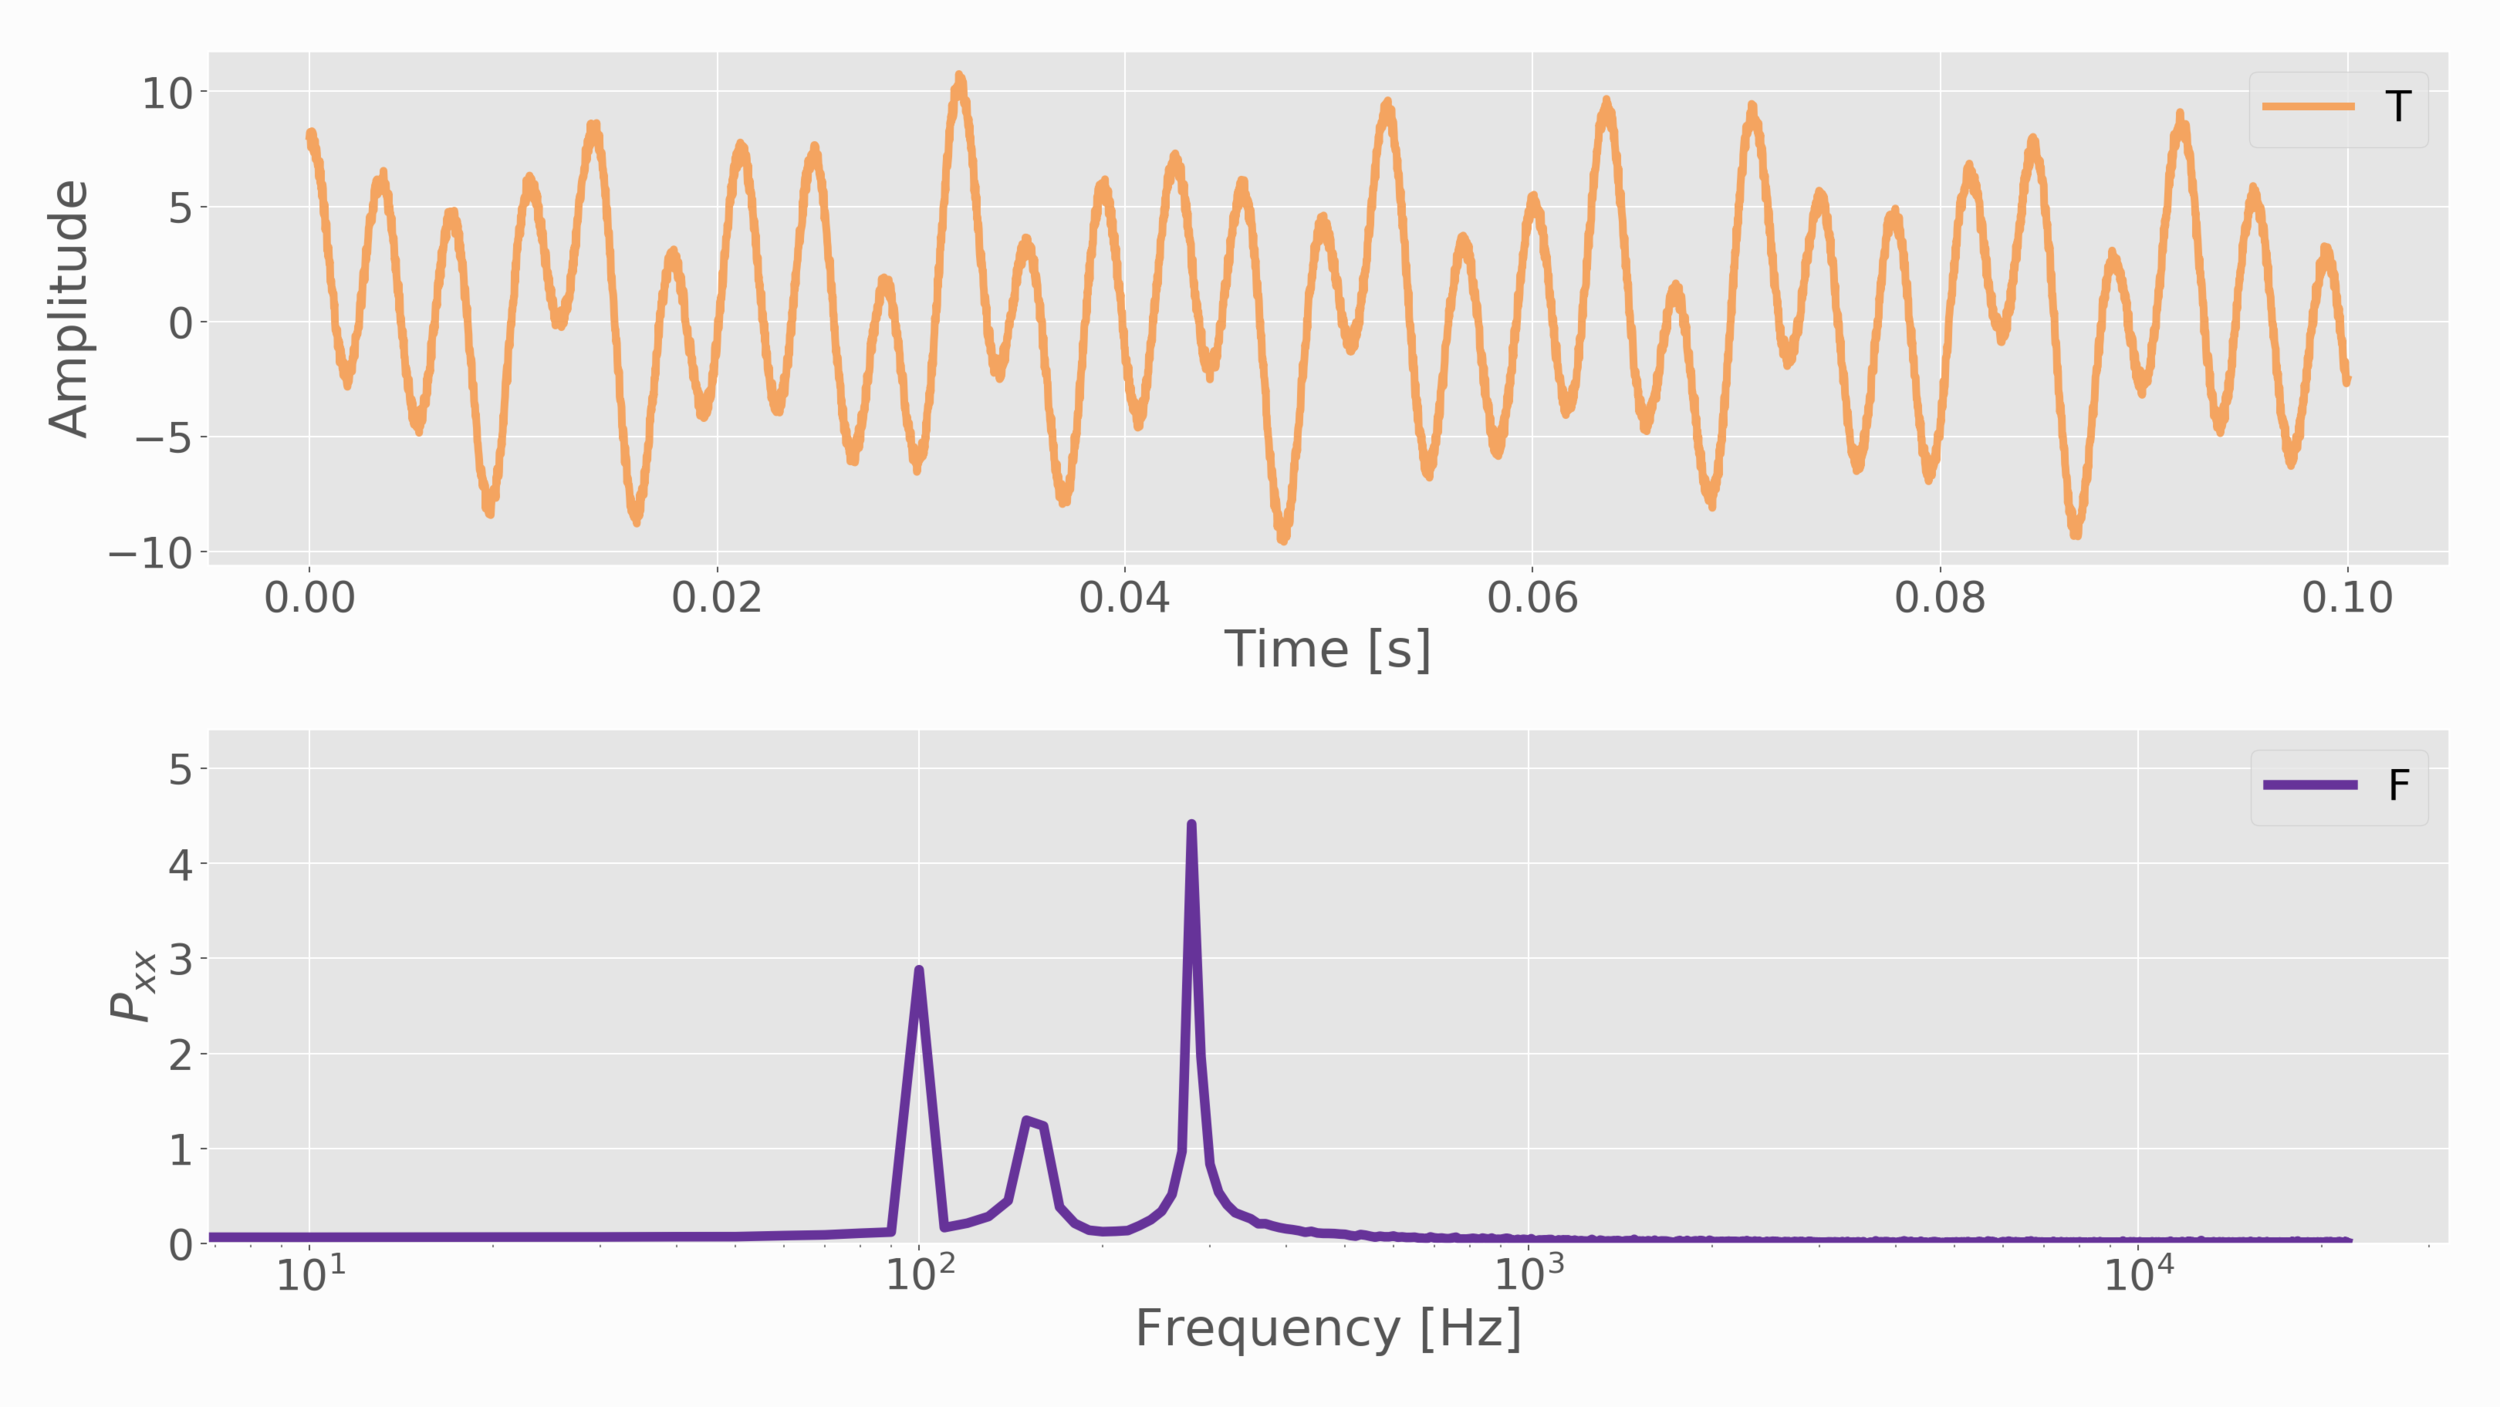 Figure 4:  Computed FFT for three separate sine waves at three different amplitudes and frequencies with some added noise. The FFT has trouble resolving one frequency because the sampling period is likely too short. That, in conjunction with the added noise makes resolving the peak more difficult. The other two signals, however, are high enough above the noise that their peaks are more easily resolved.